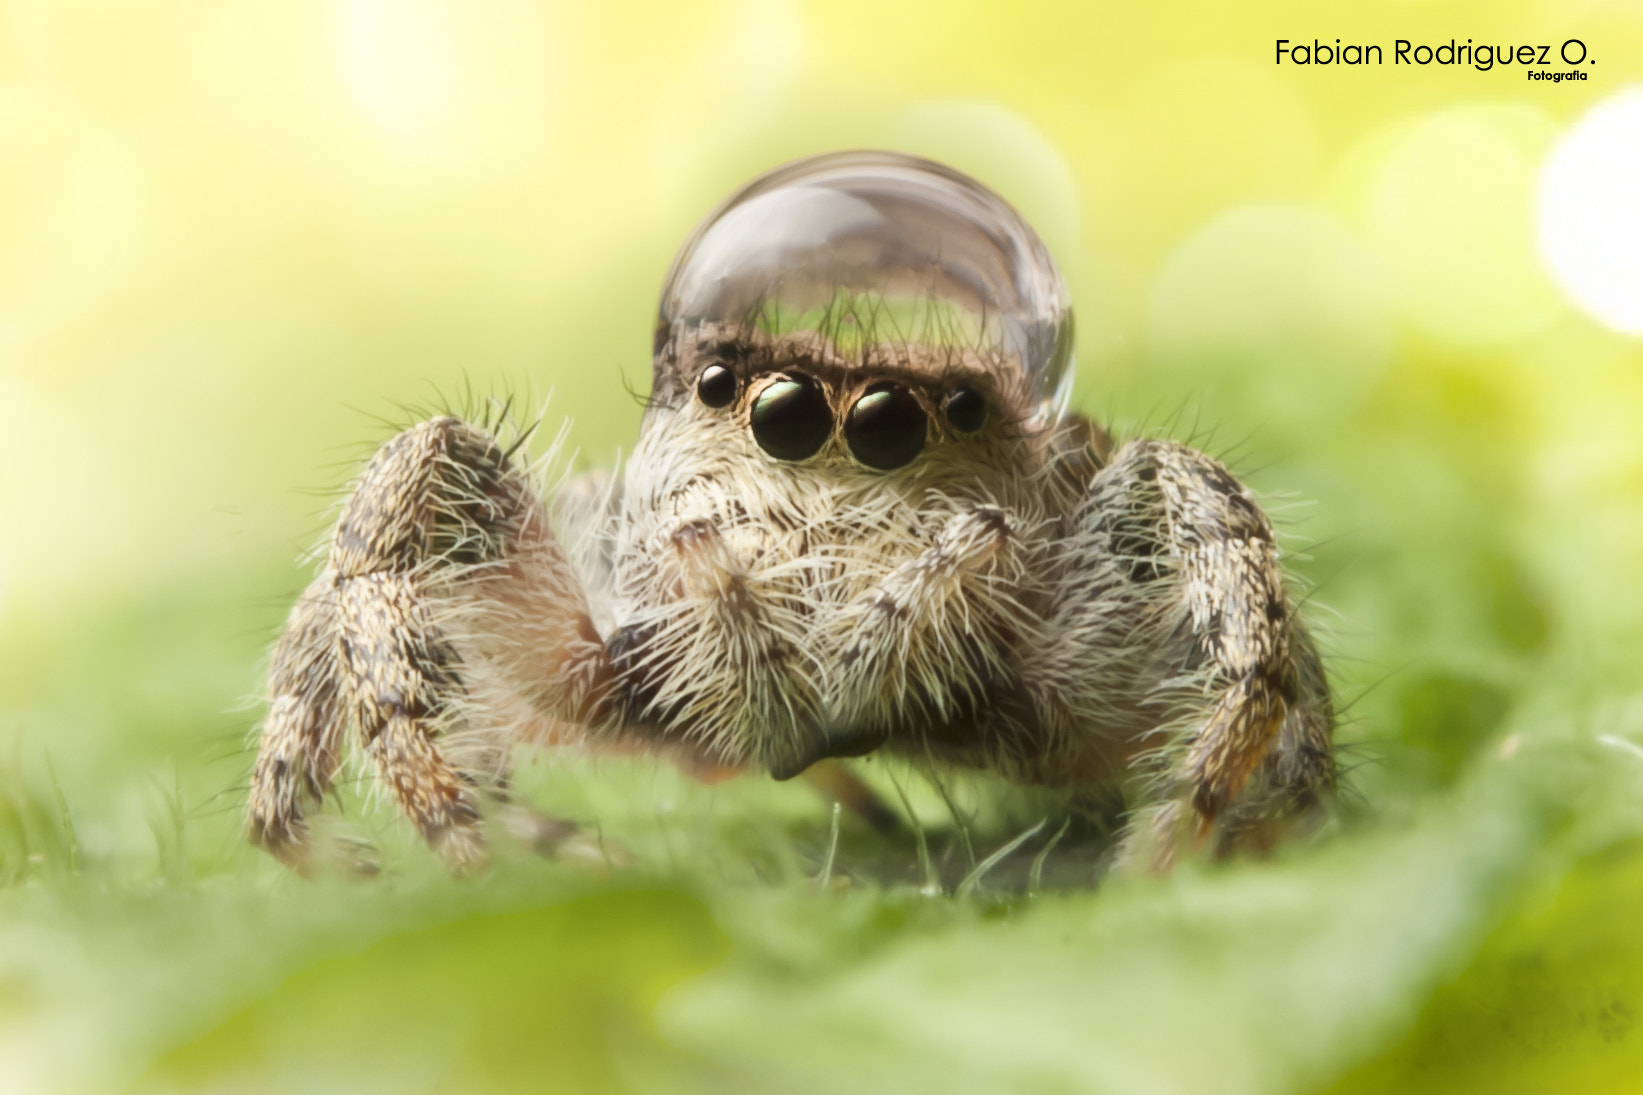 Photograph Female Phidippus Clarus with a drop by Fabian Rodríguez on 500px